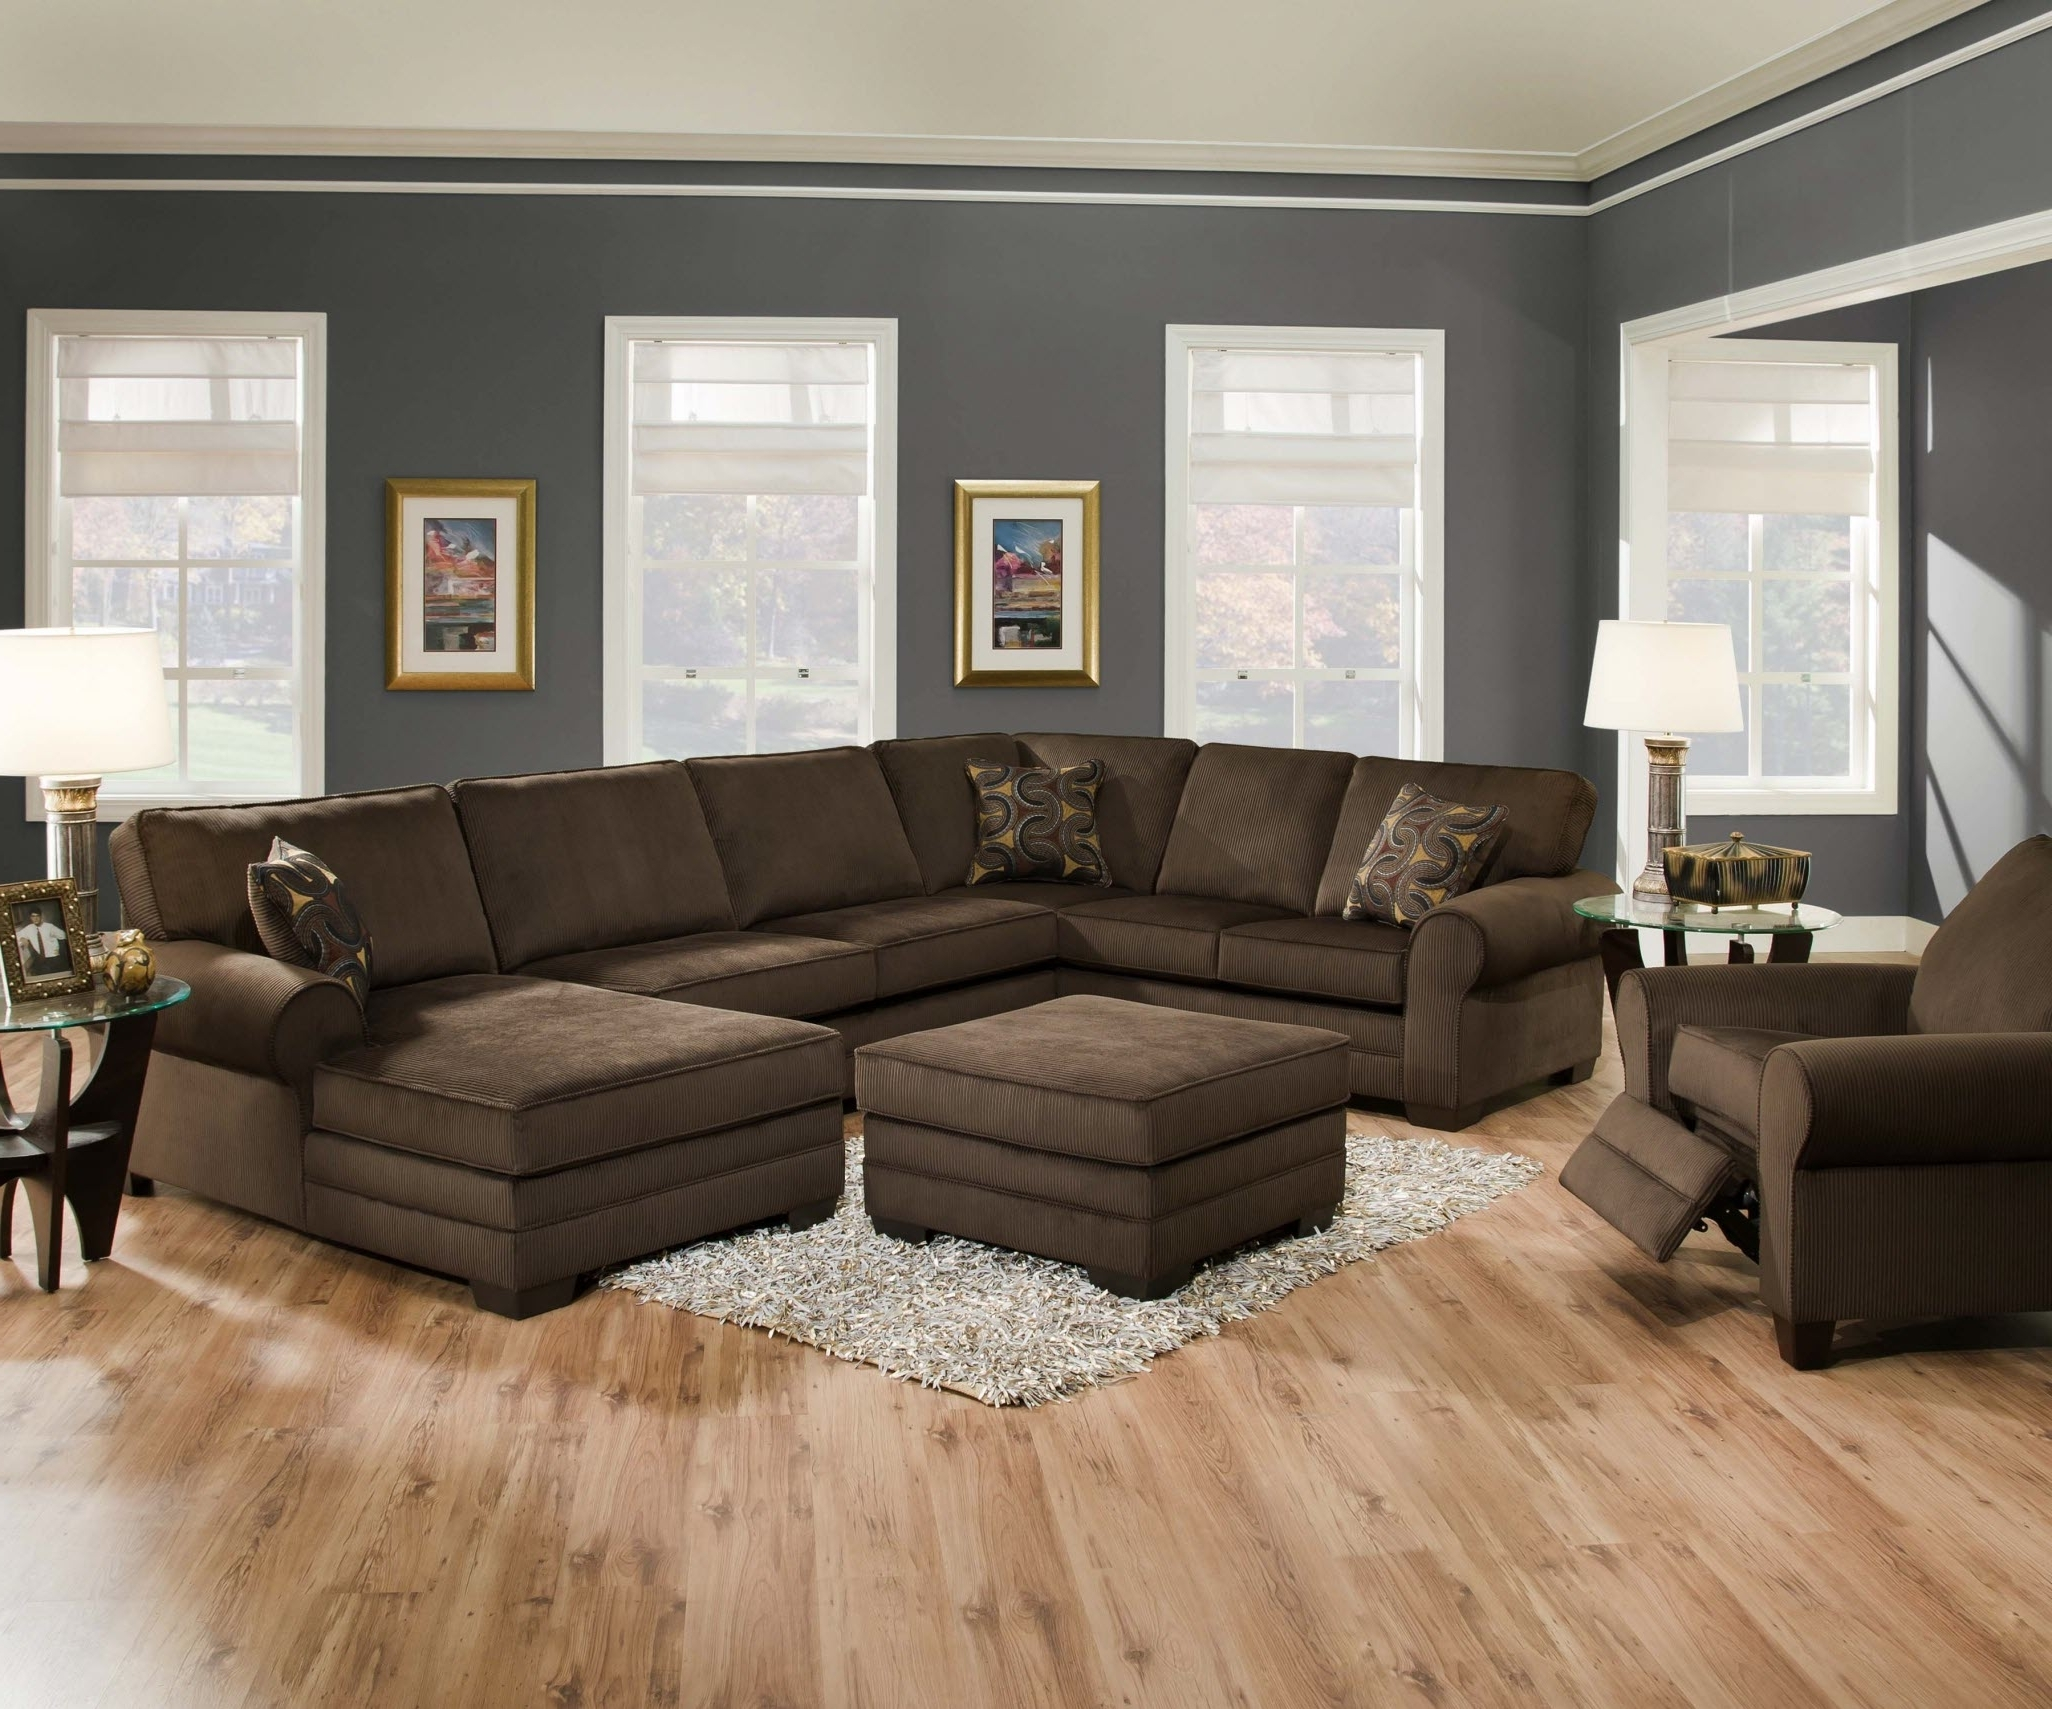 Most Up To Date Simmons Sectional Sofas Inside Designssimmons – Simmons Deluxe Beluga Sectional (View 11 of 15)